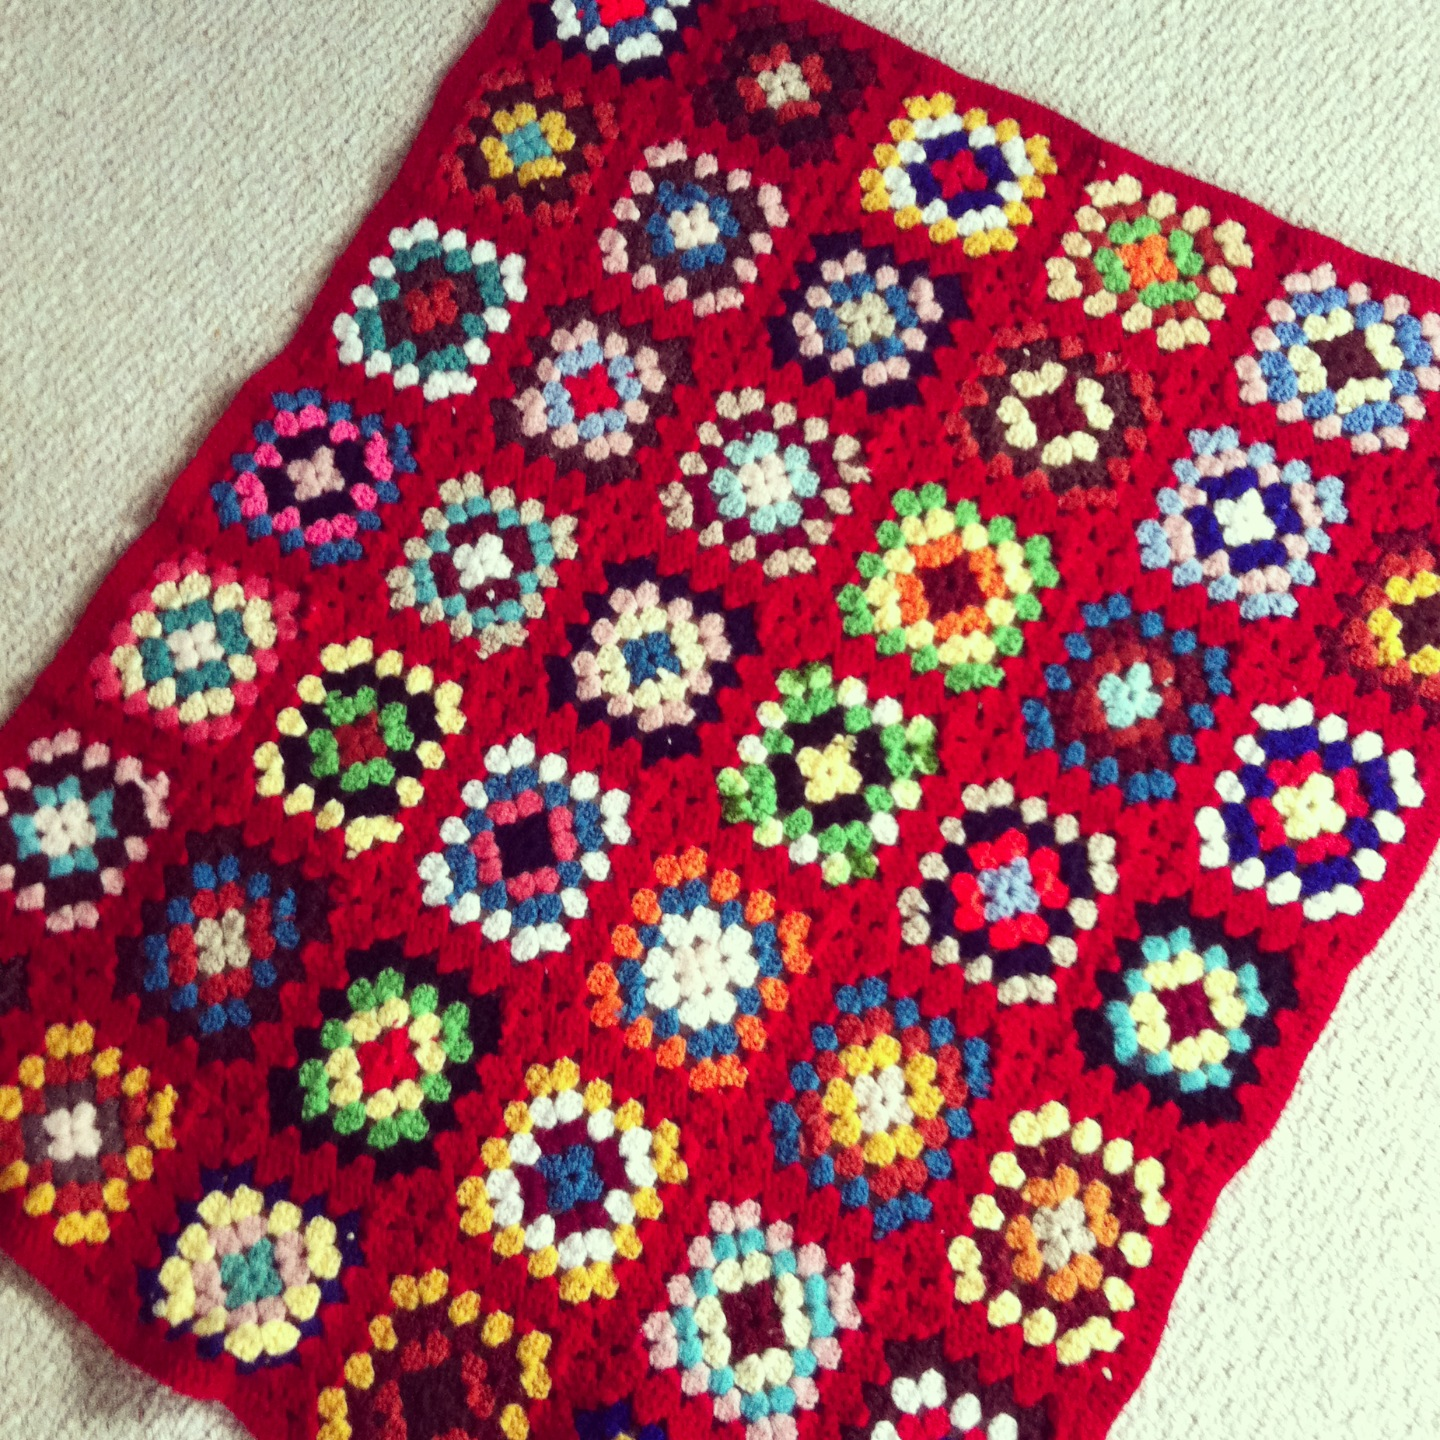 Red Granny Square Afghan